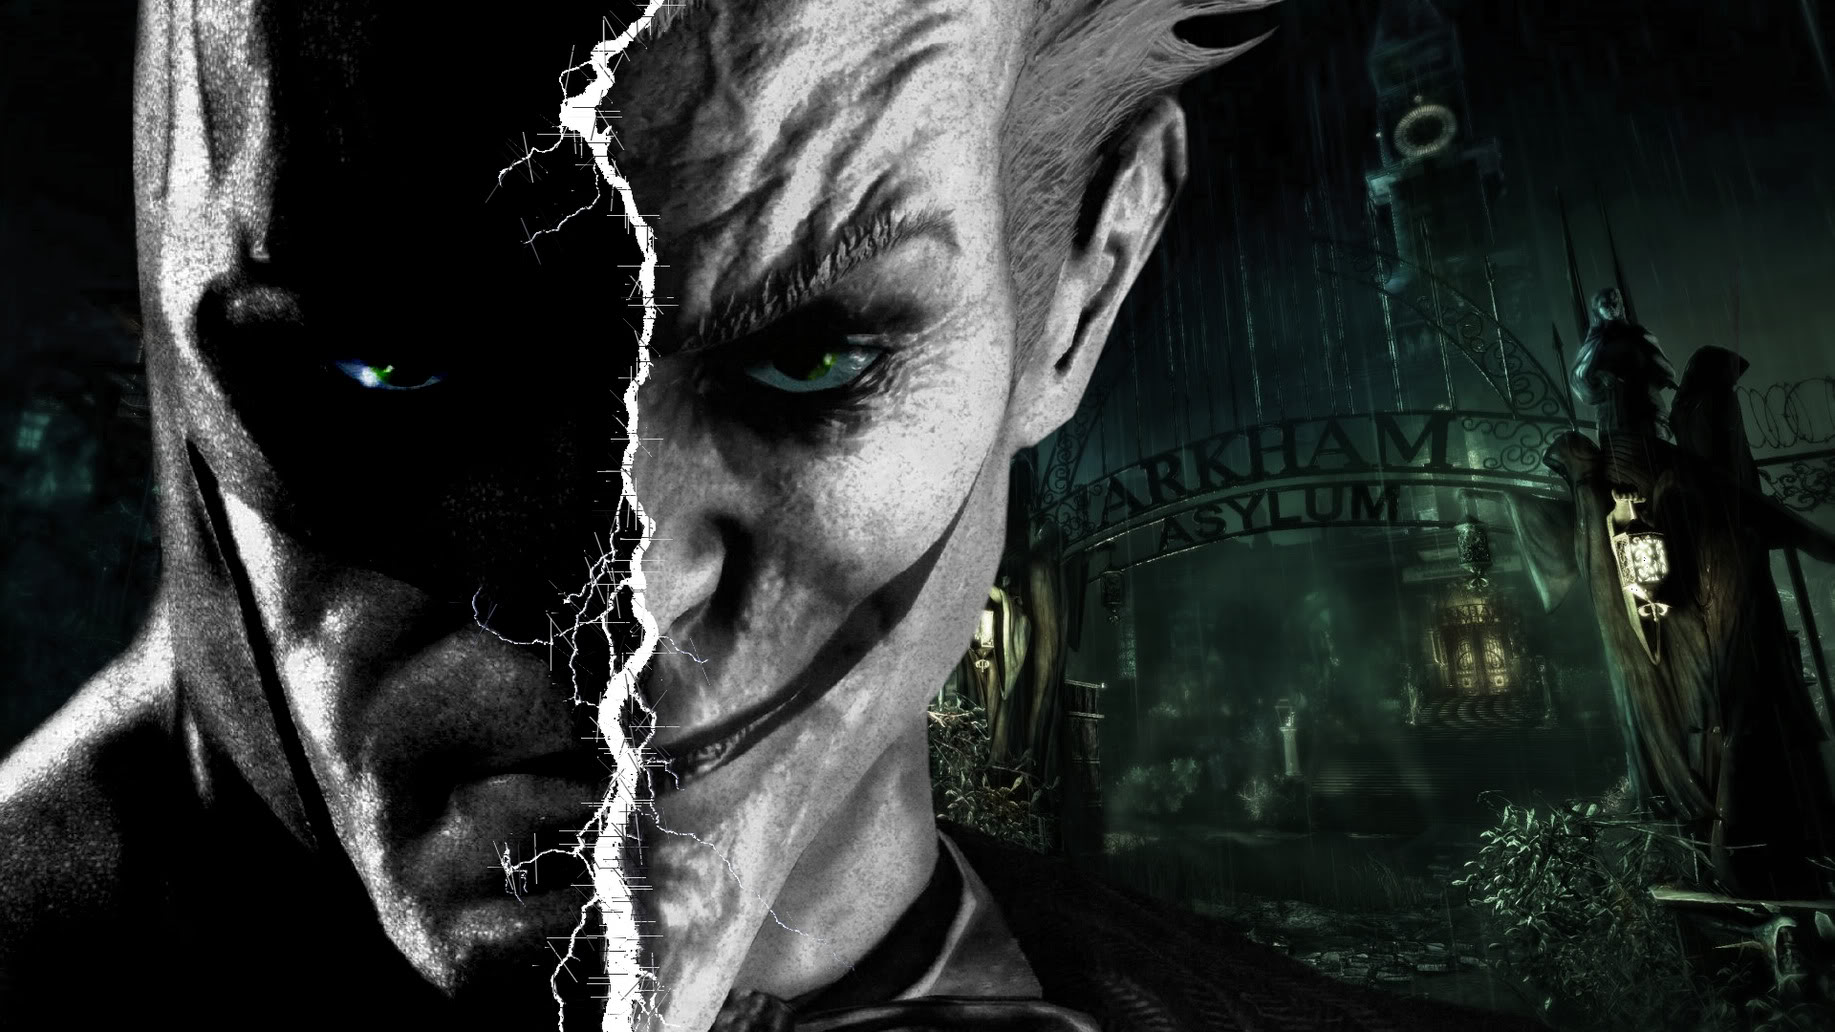 Batman Arkham Asylum Wallpaper: Batman: Arkham Asylum Wallpaper And Background Image